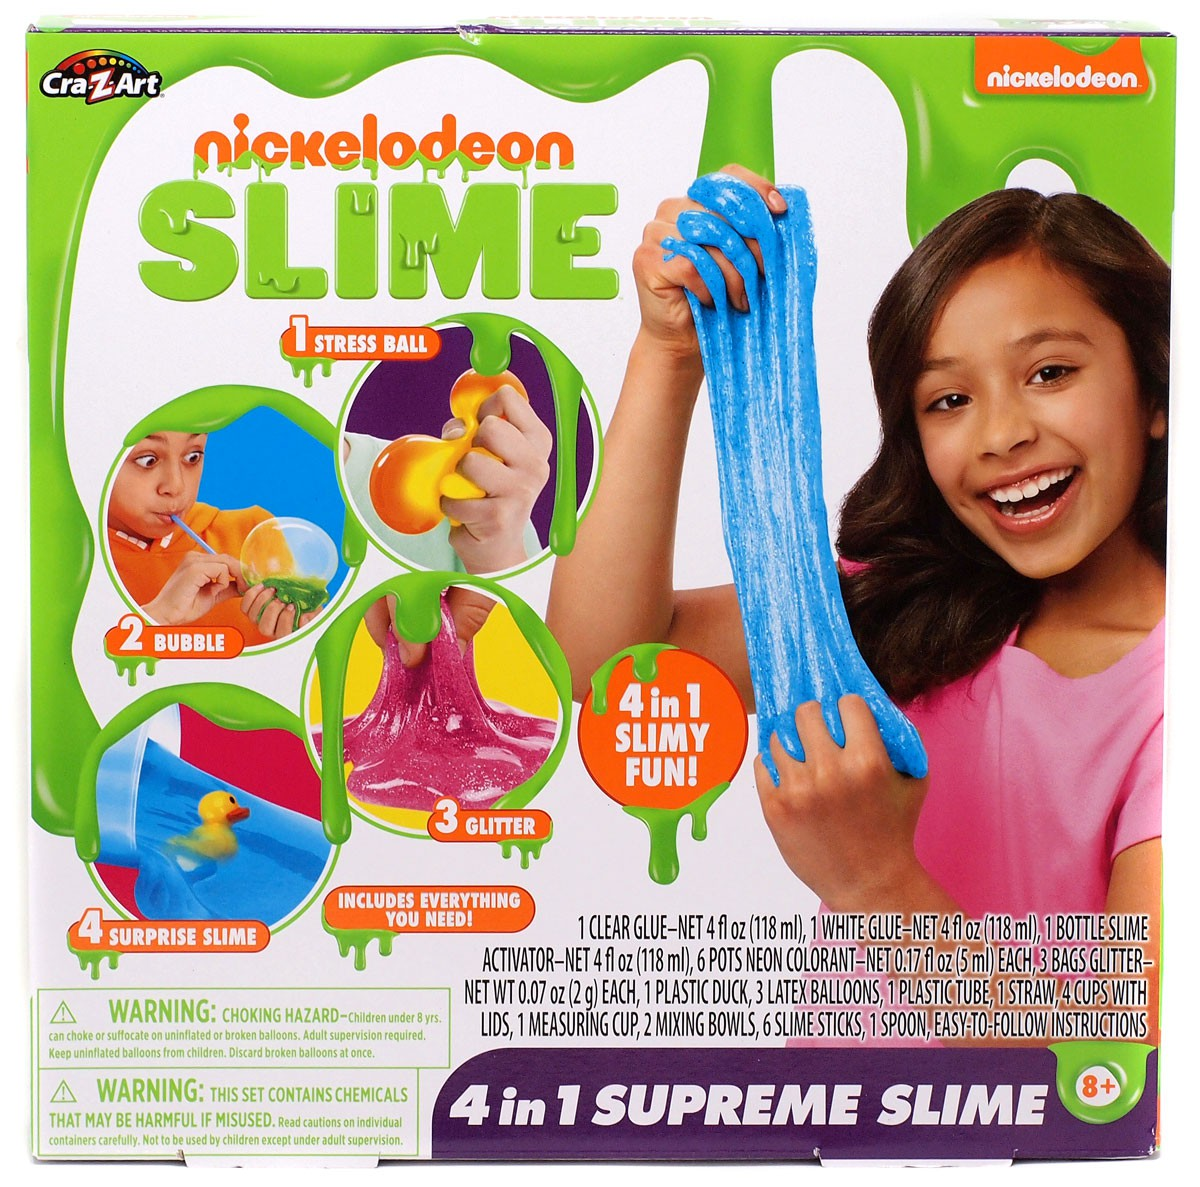 Nickelodeon 4 in 1 Supreme Slime Kit